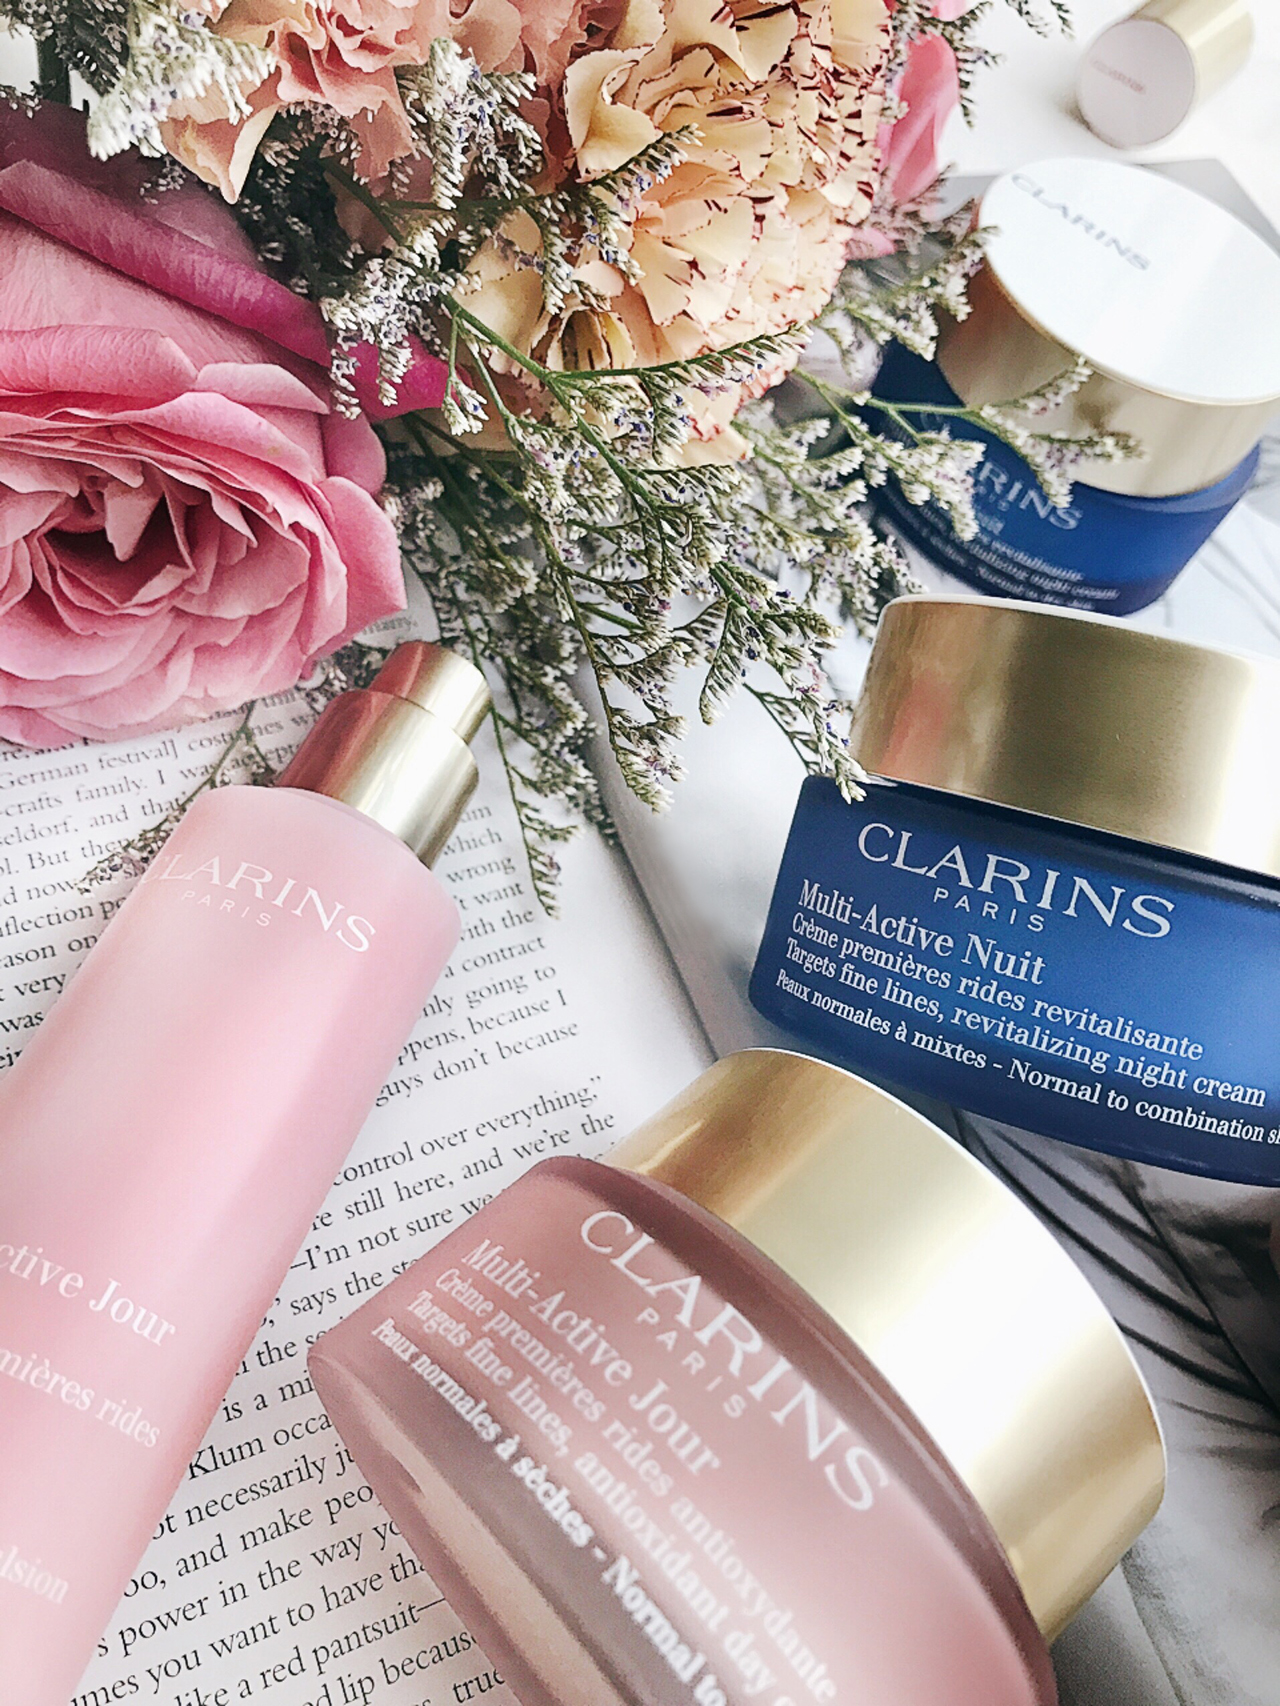 Clarins Multi-Active Day & Night Cream